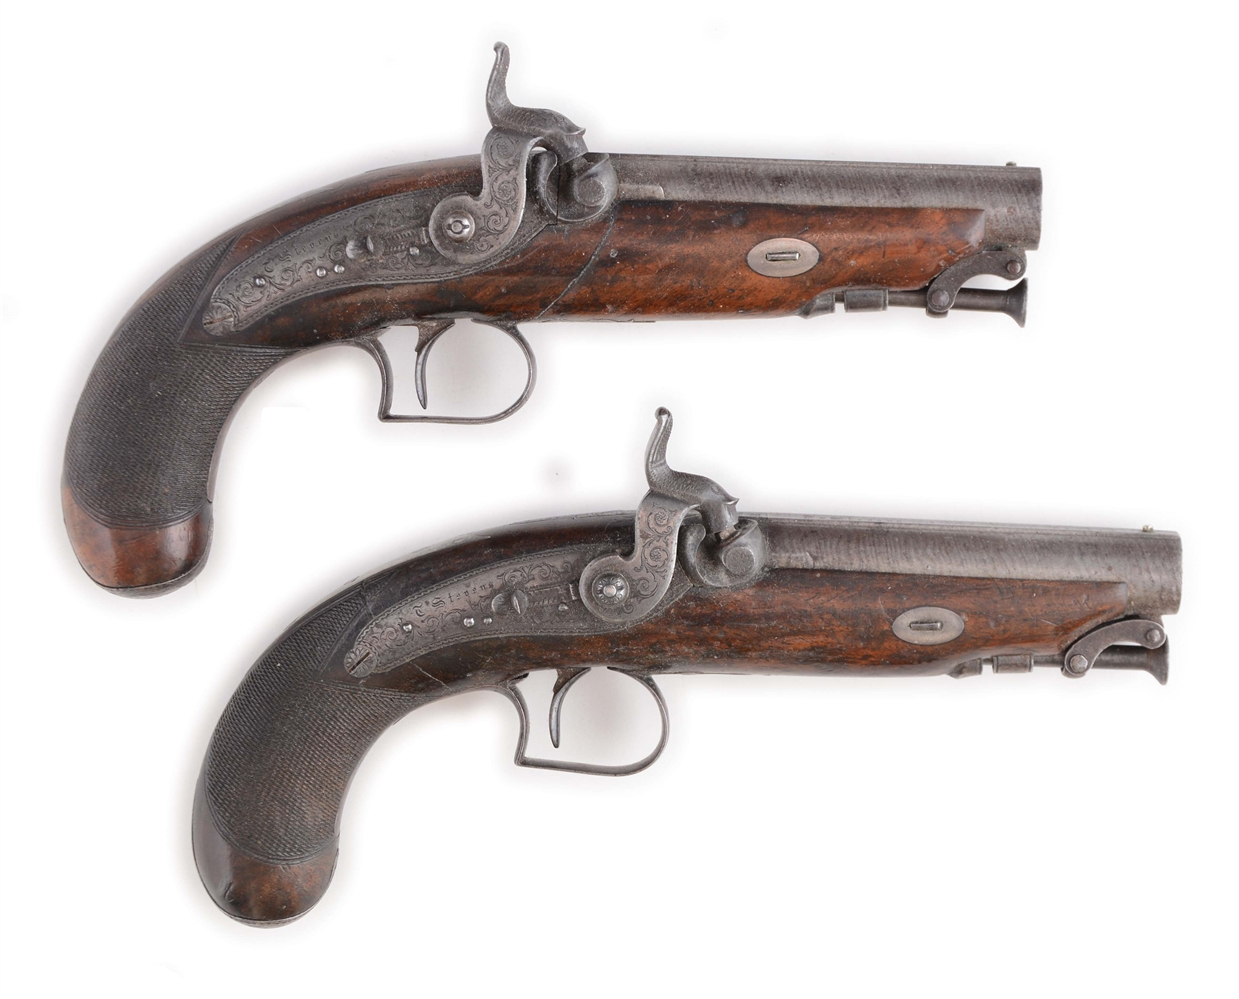 (A) LOT OF TWO: A HIGH QUALITY CASED PAIR OF ENGLISH PERCUSSION TRAVELLING PISTOLS BY THOMAS STEVENS, 43 HIGH HOLBORN STREET, LONDON, 1823-1842.